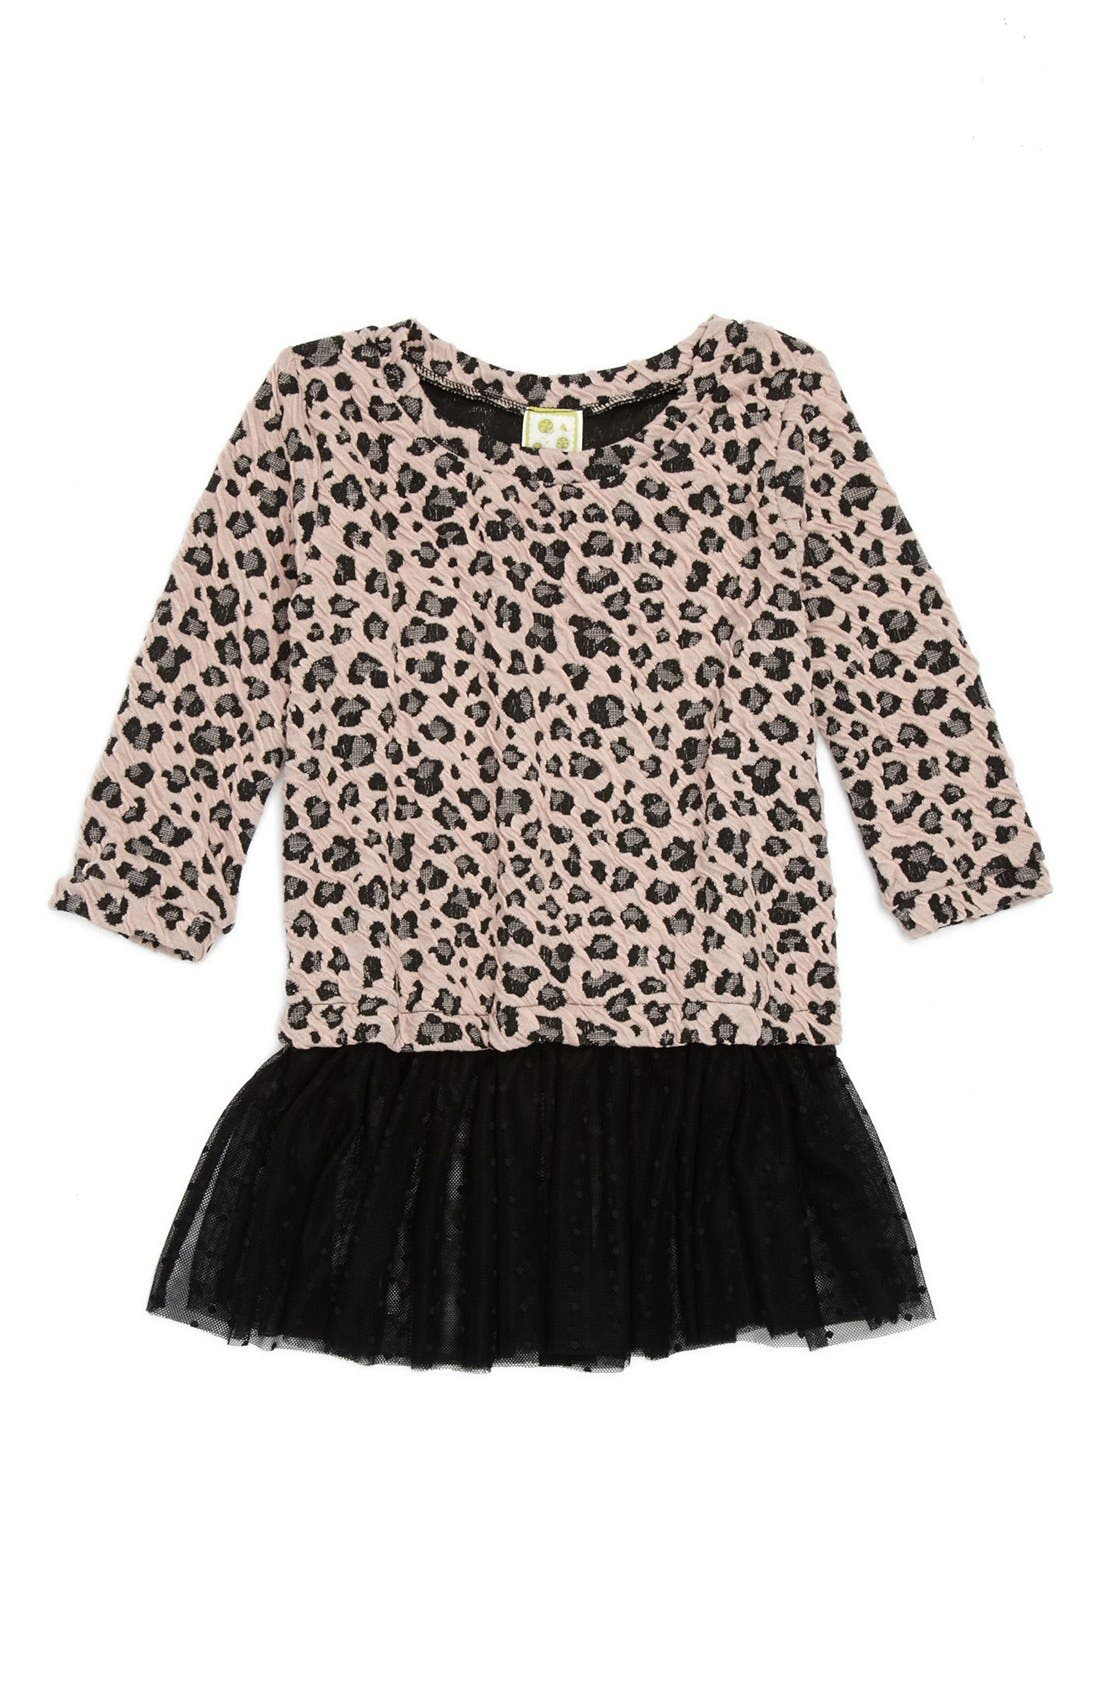 Alternate Image 1 Selected - Kiddo Ruffle Hem Top (Little Girls)